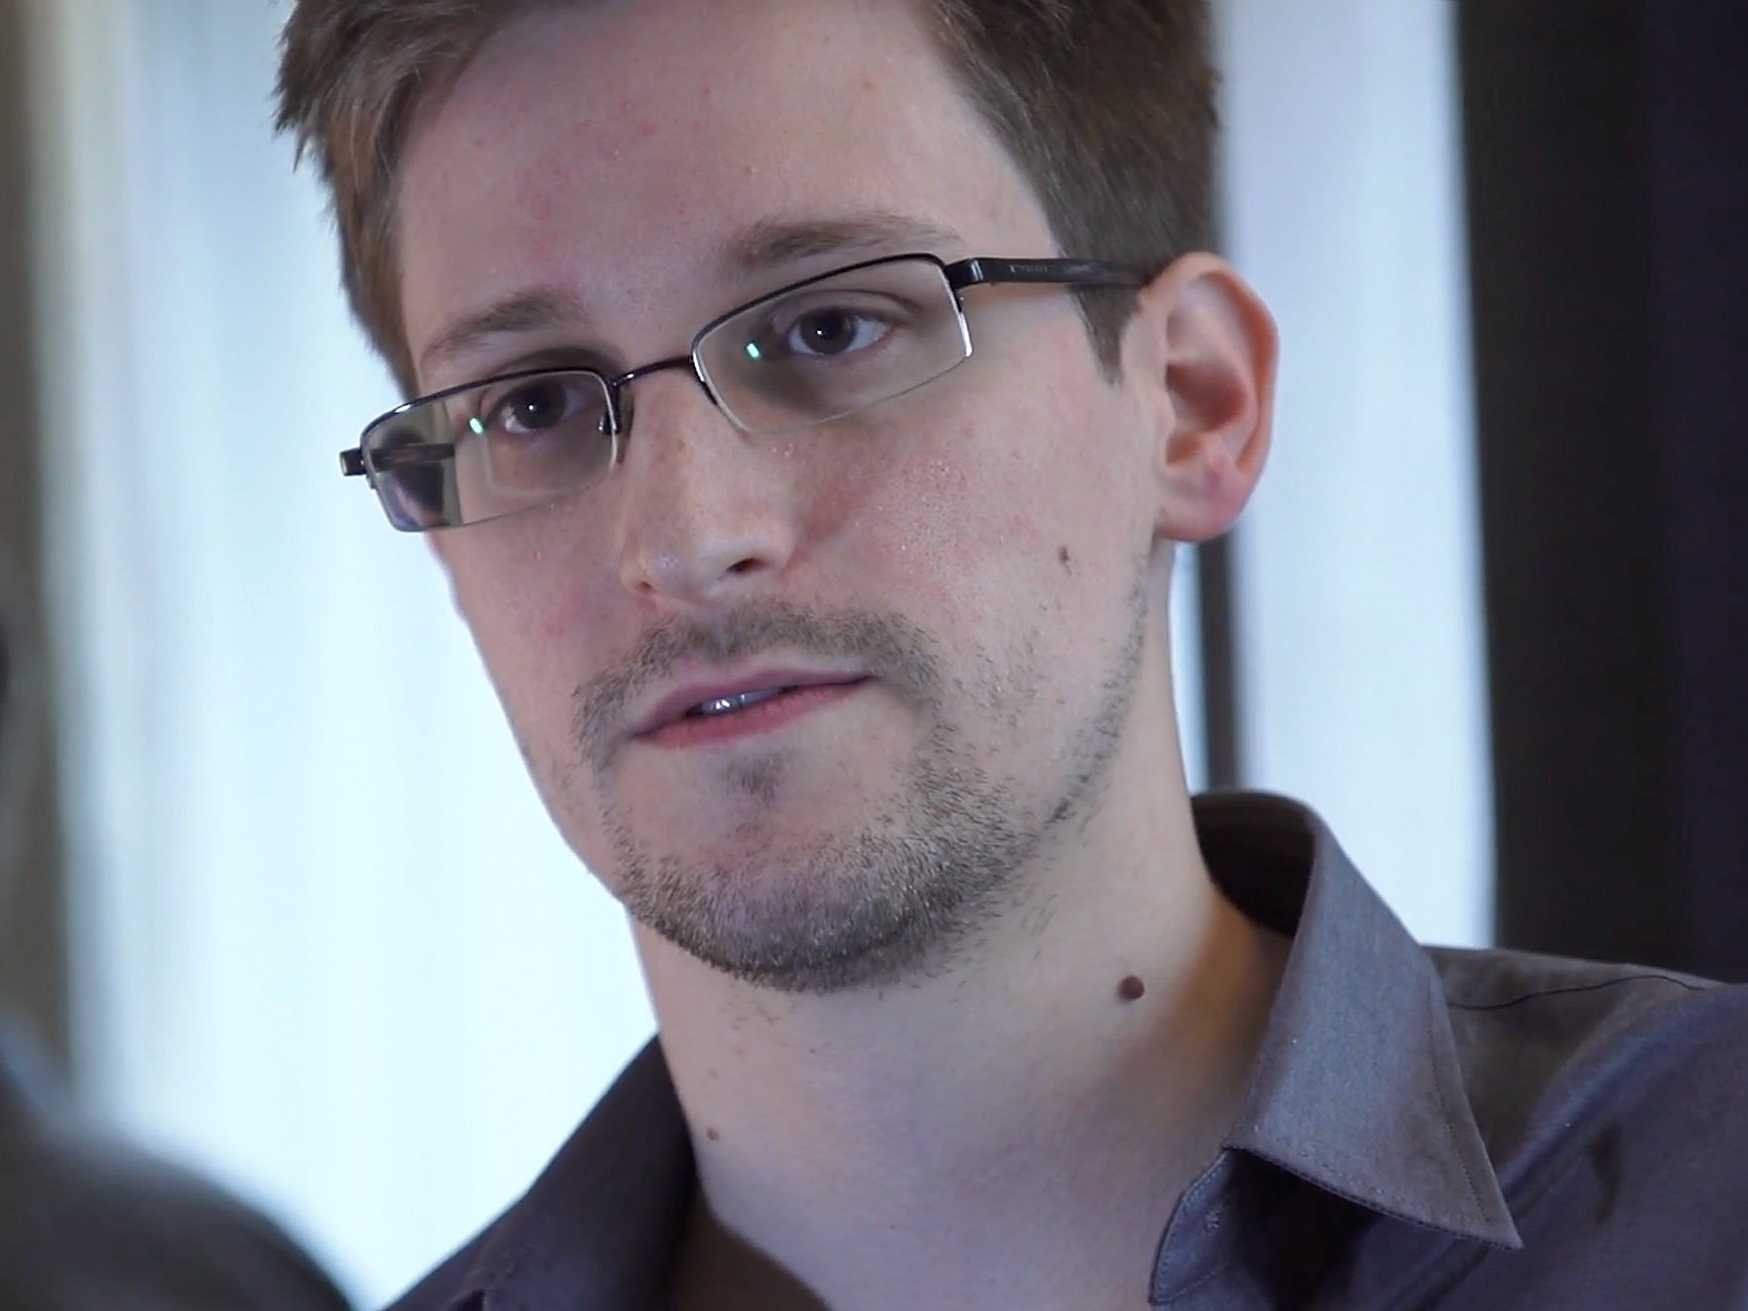 edward-snowden-charged-under-the-espionage-act